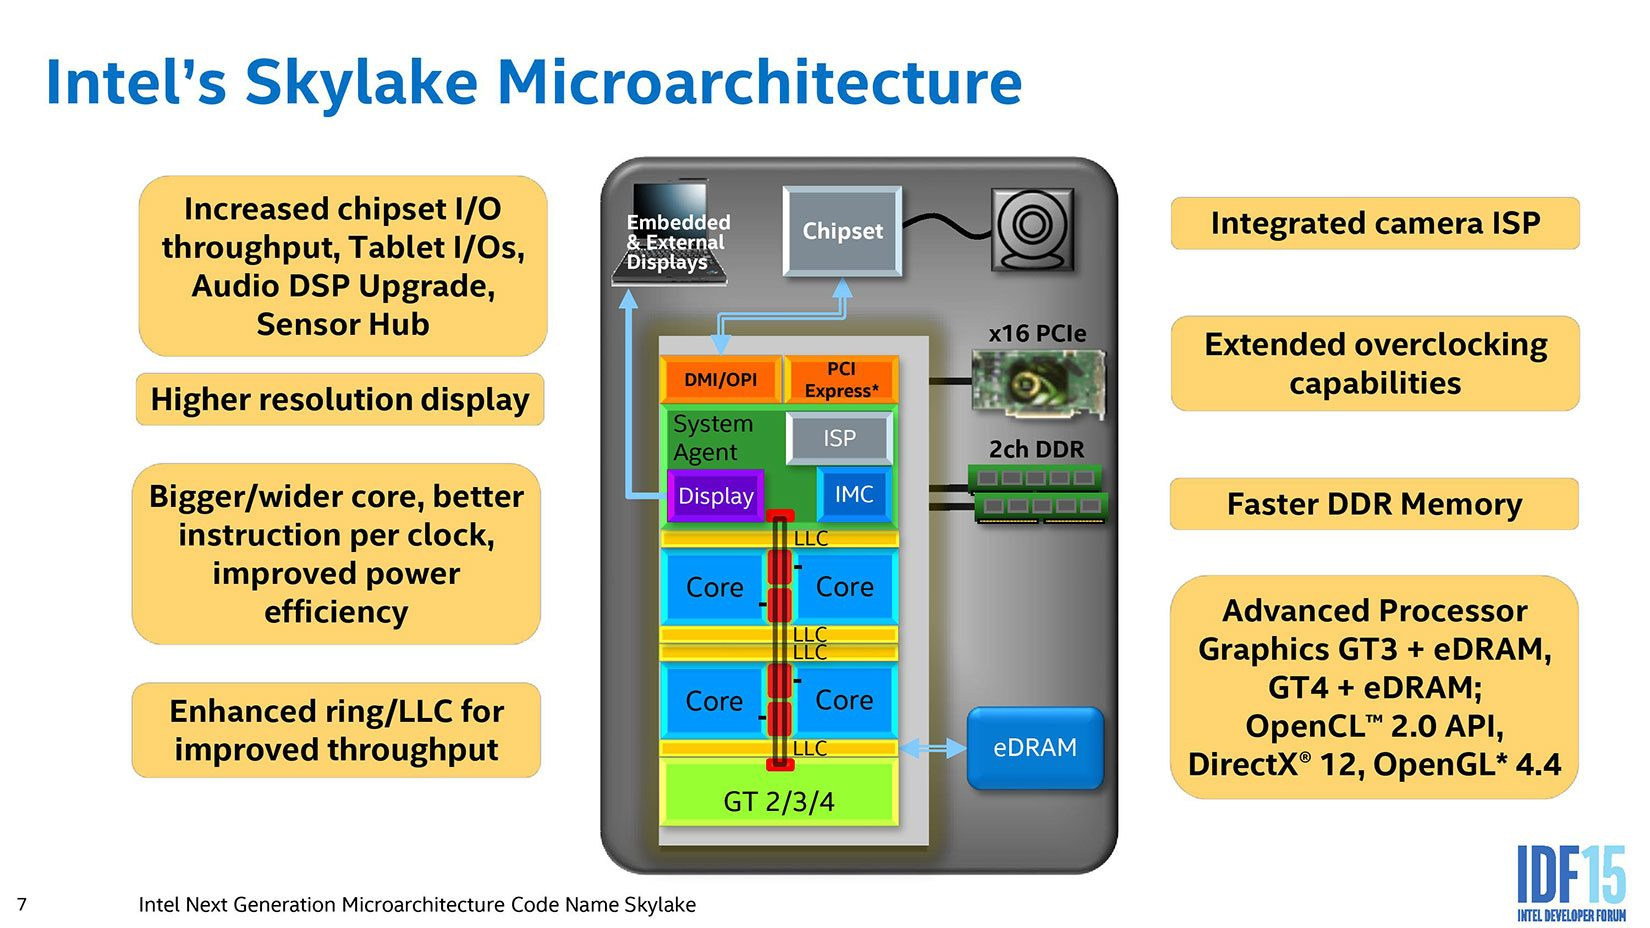 The Skylake microarchitecture